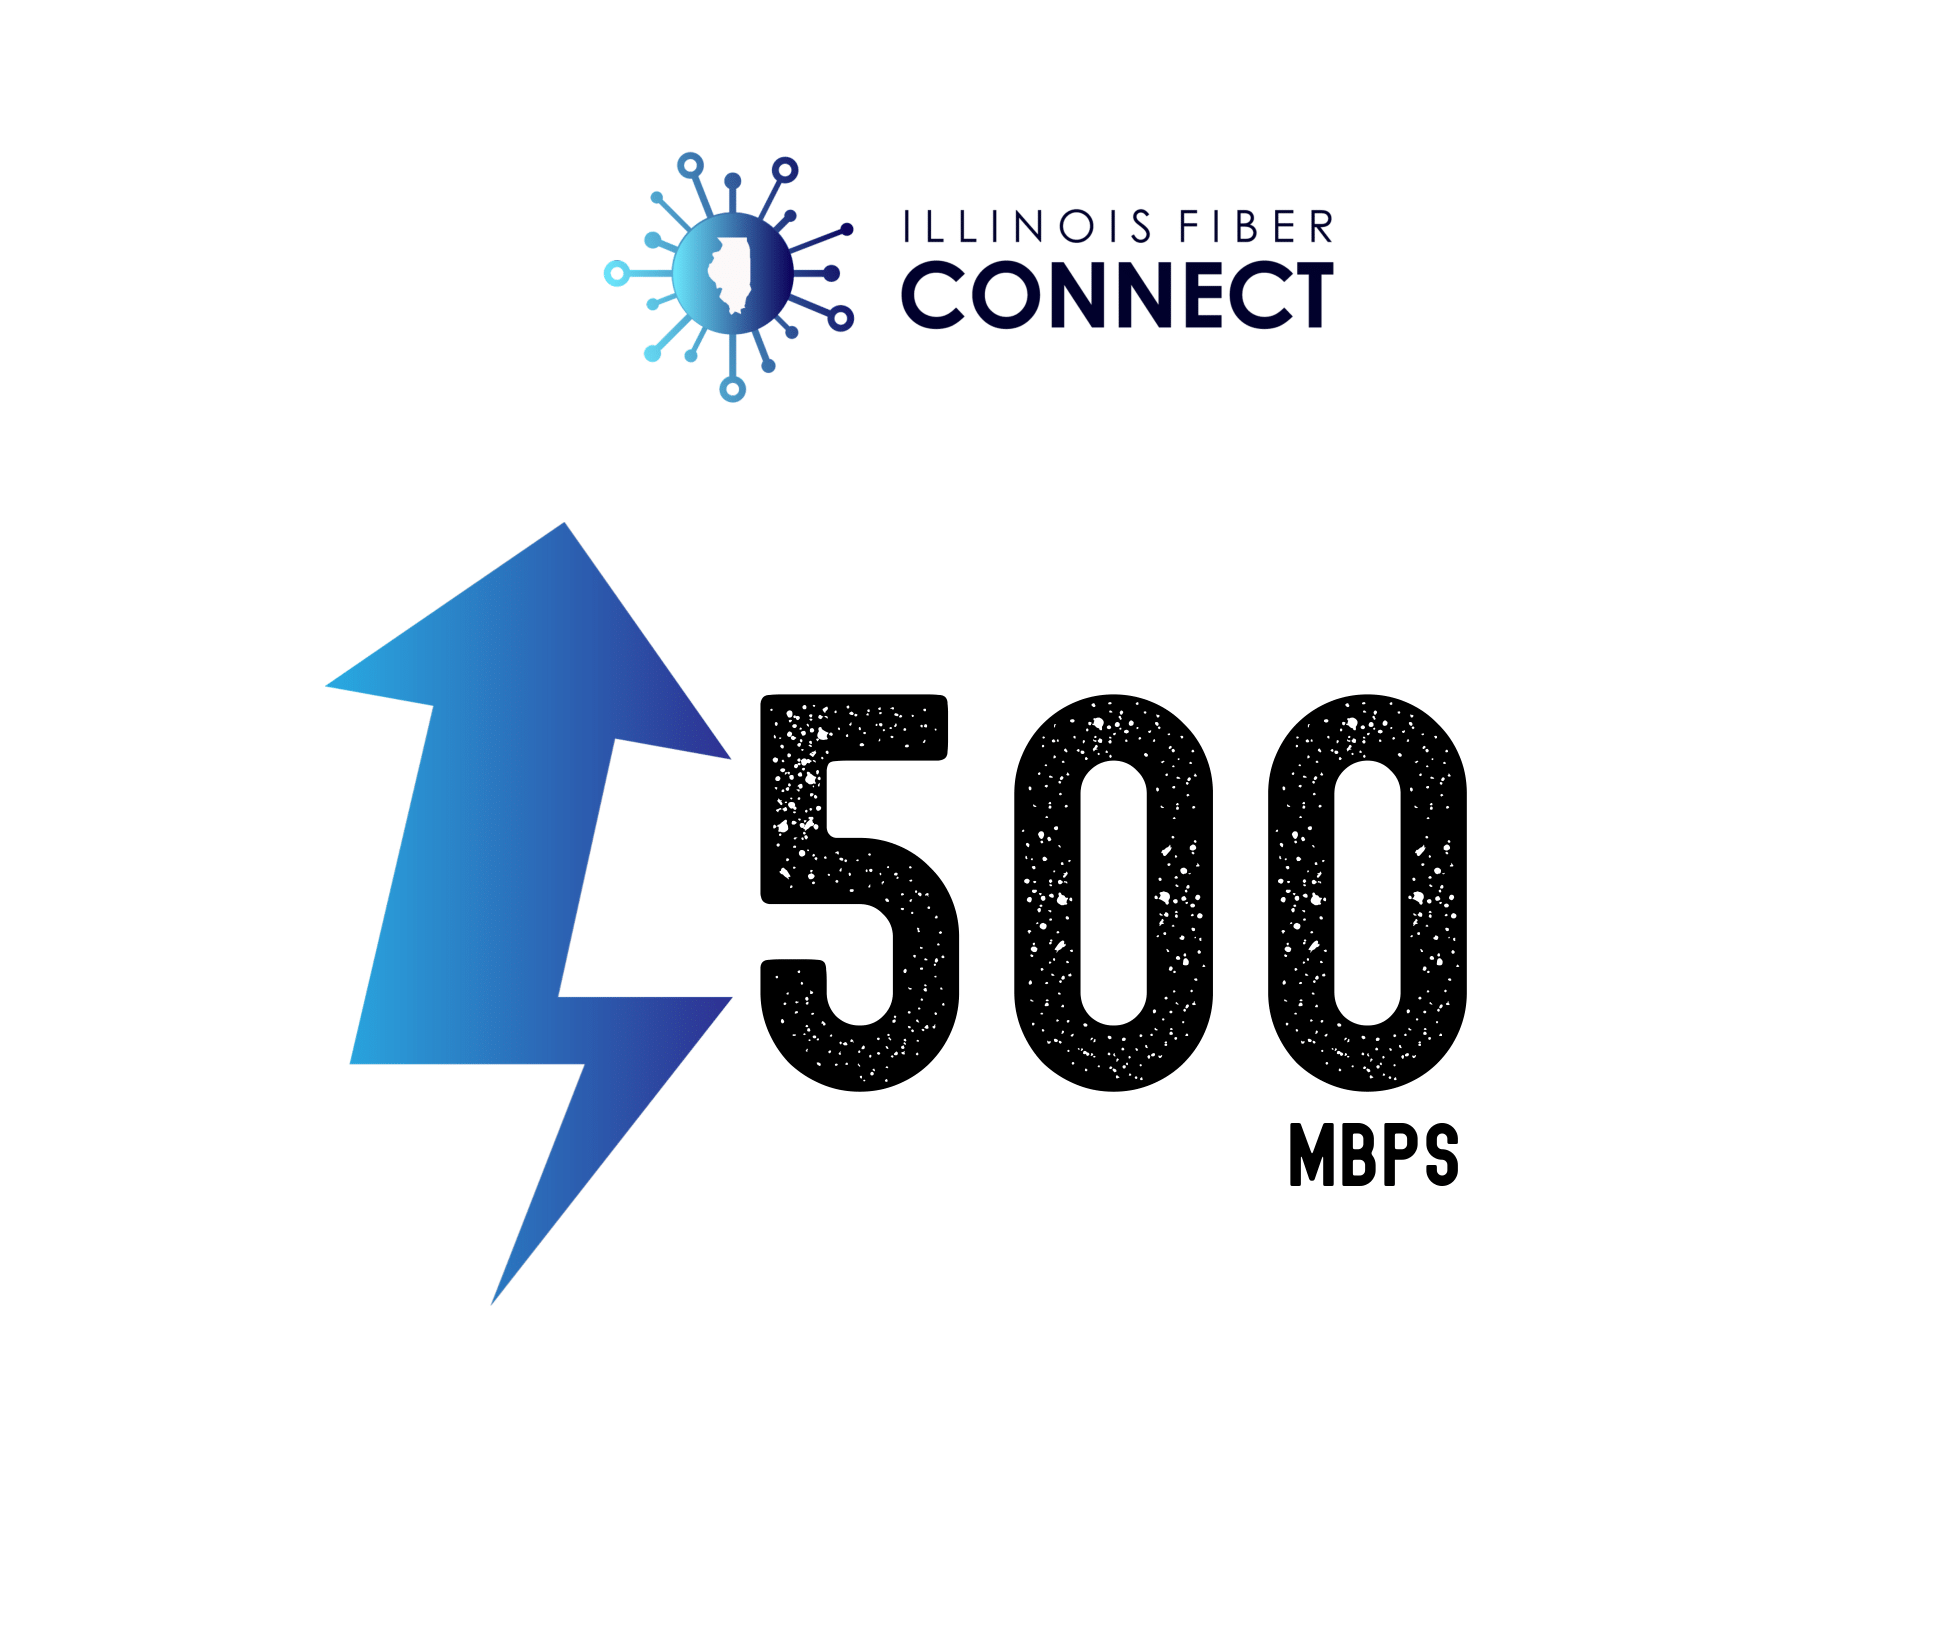 Illinois Fiber Connect Announces Automatic Upgrade to 500 Mbps